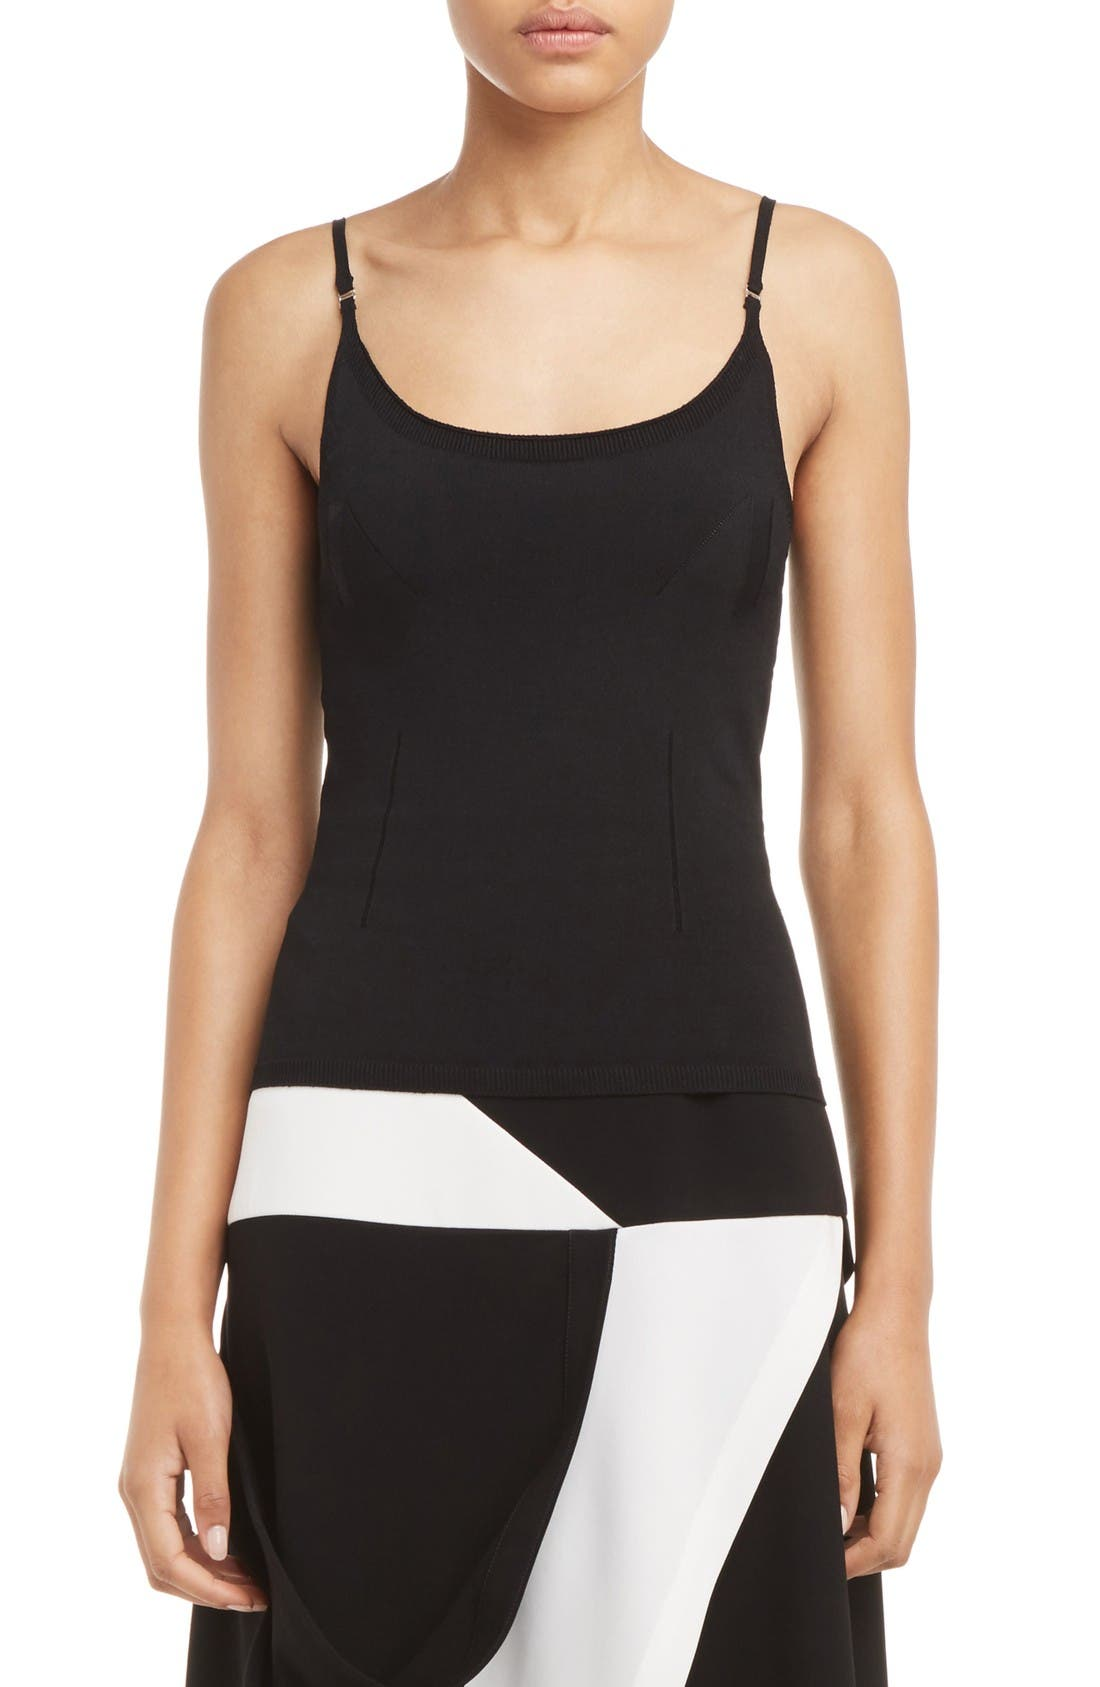 Alternate Image 1 Selected - J.W.ANDERSON Geometric Camisole